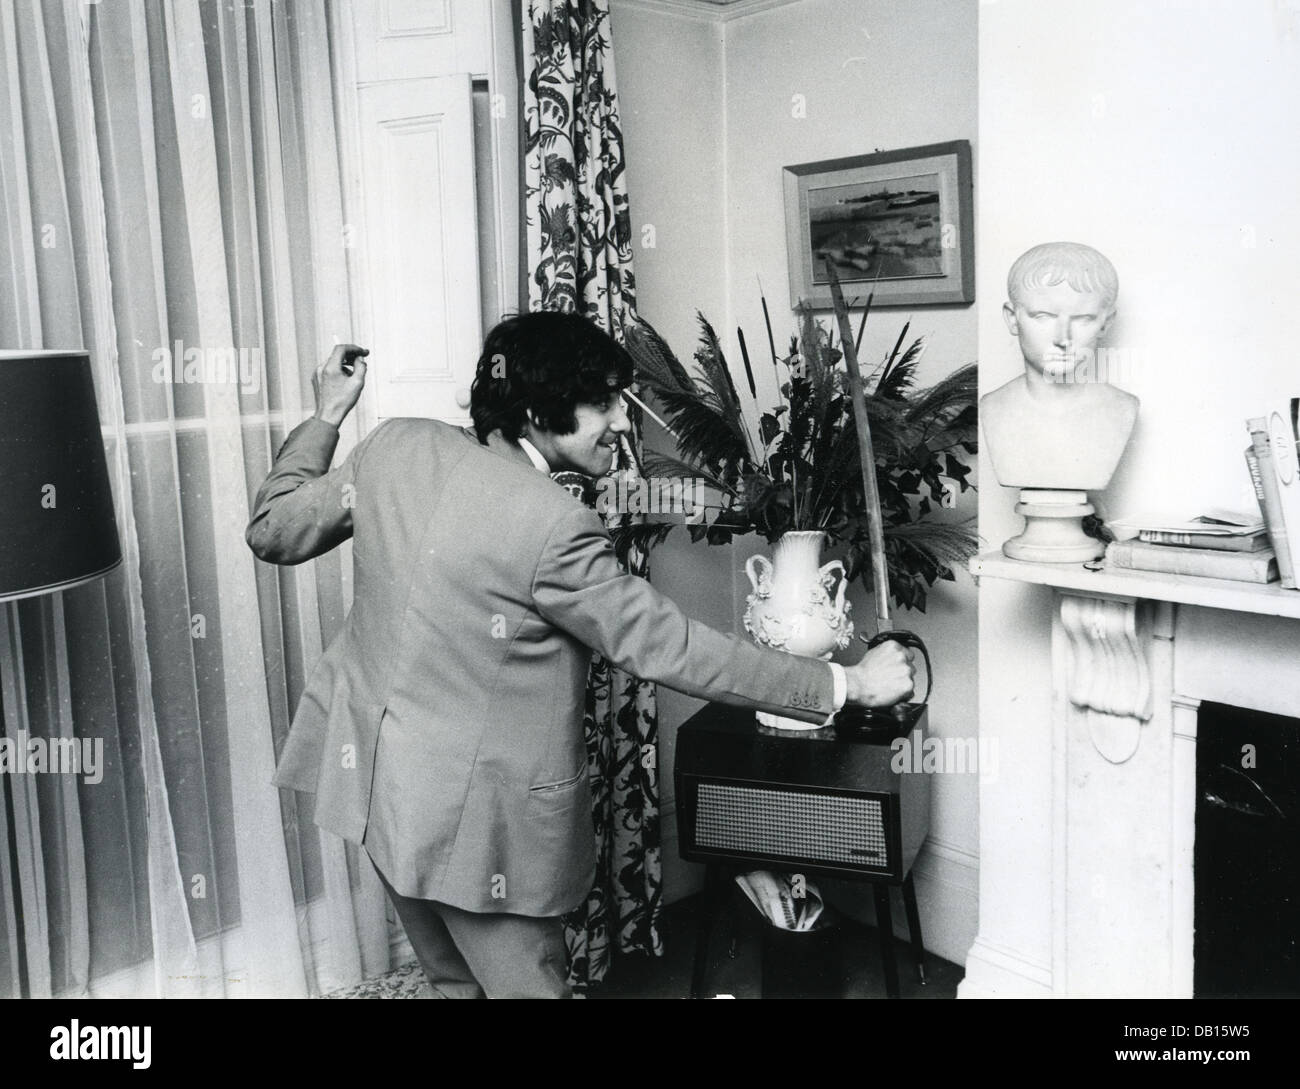 CAT STEVENS (Yusuf islam) English pop singer at his London home in January 1967. Photo Tony Gale - Stock Image